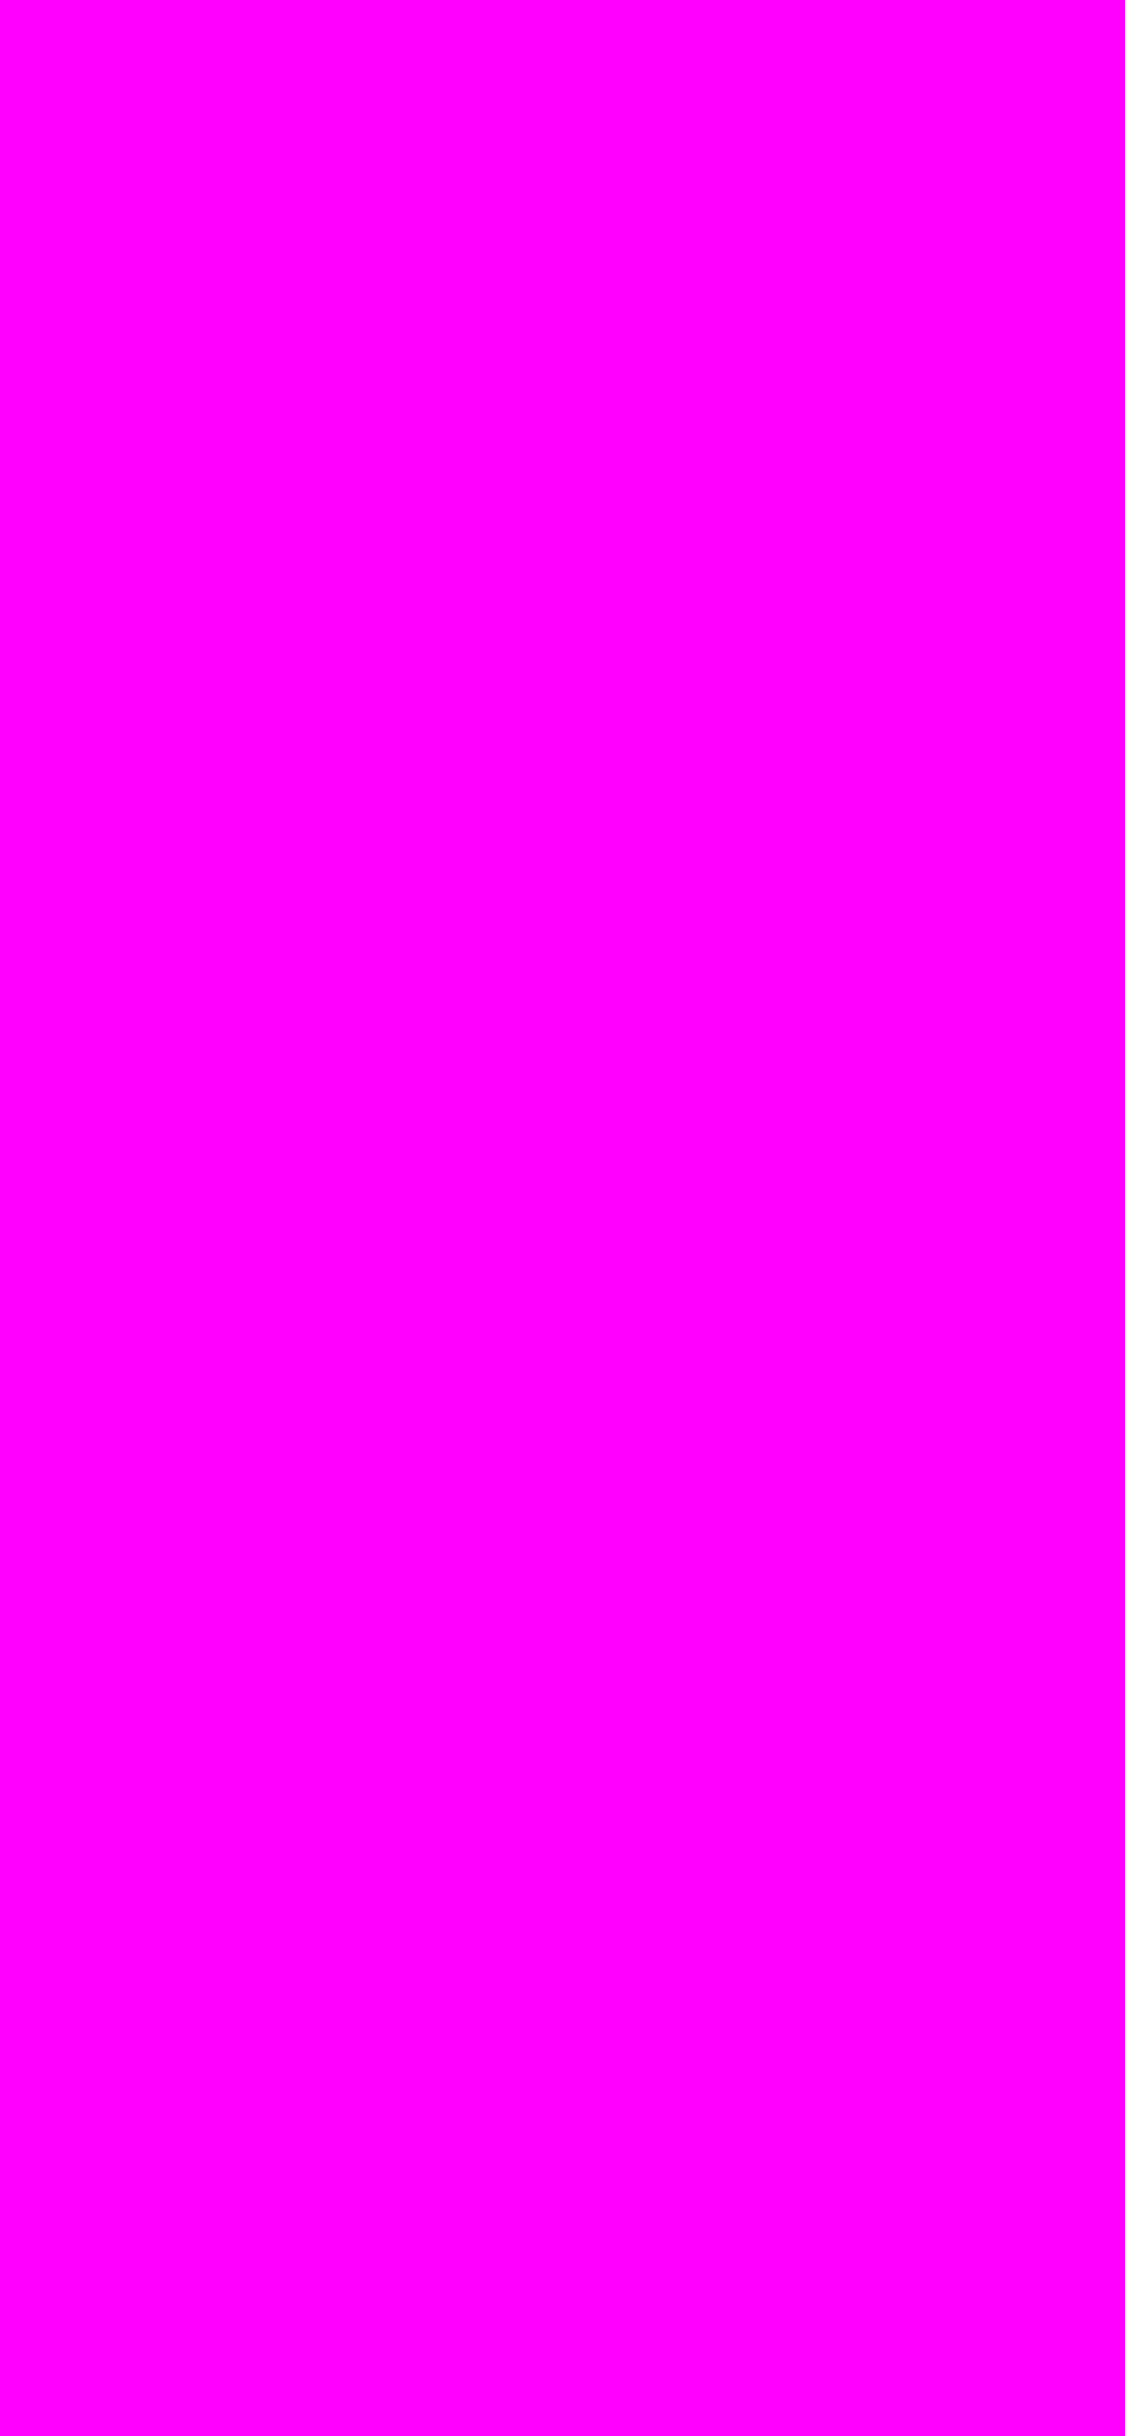 1125x2436 Fuchsia Solid Color Background